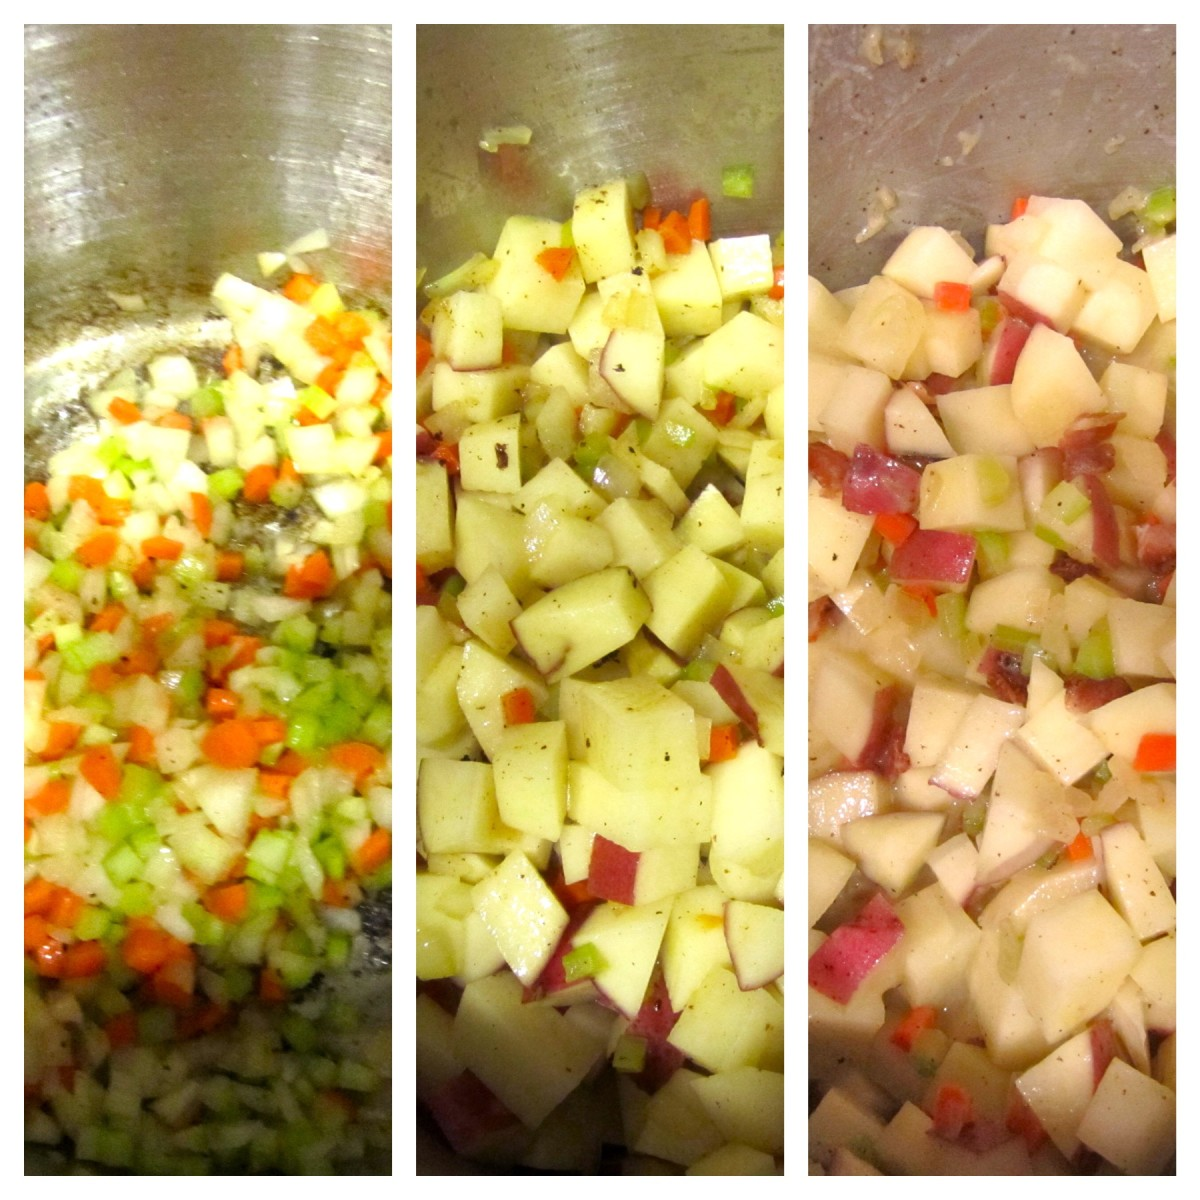 Left: Vegetables being sauteed in the stock pot. Center: Vegetables with the potatoes added and stirred. Right: All vegetables mixed with the flour for five minutes. (Steps 2 and 3)